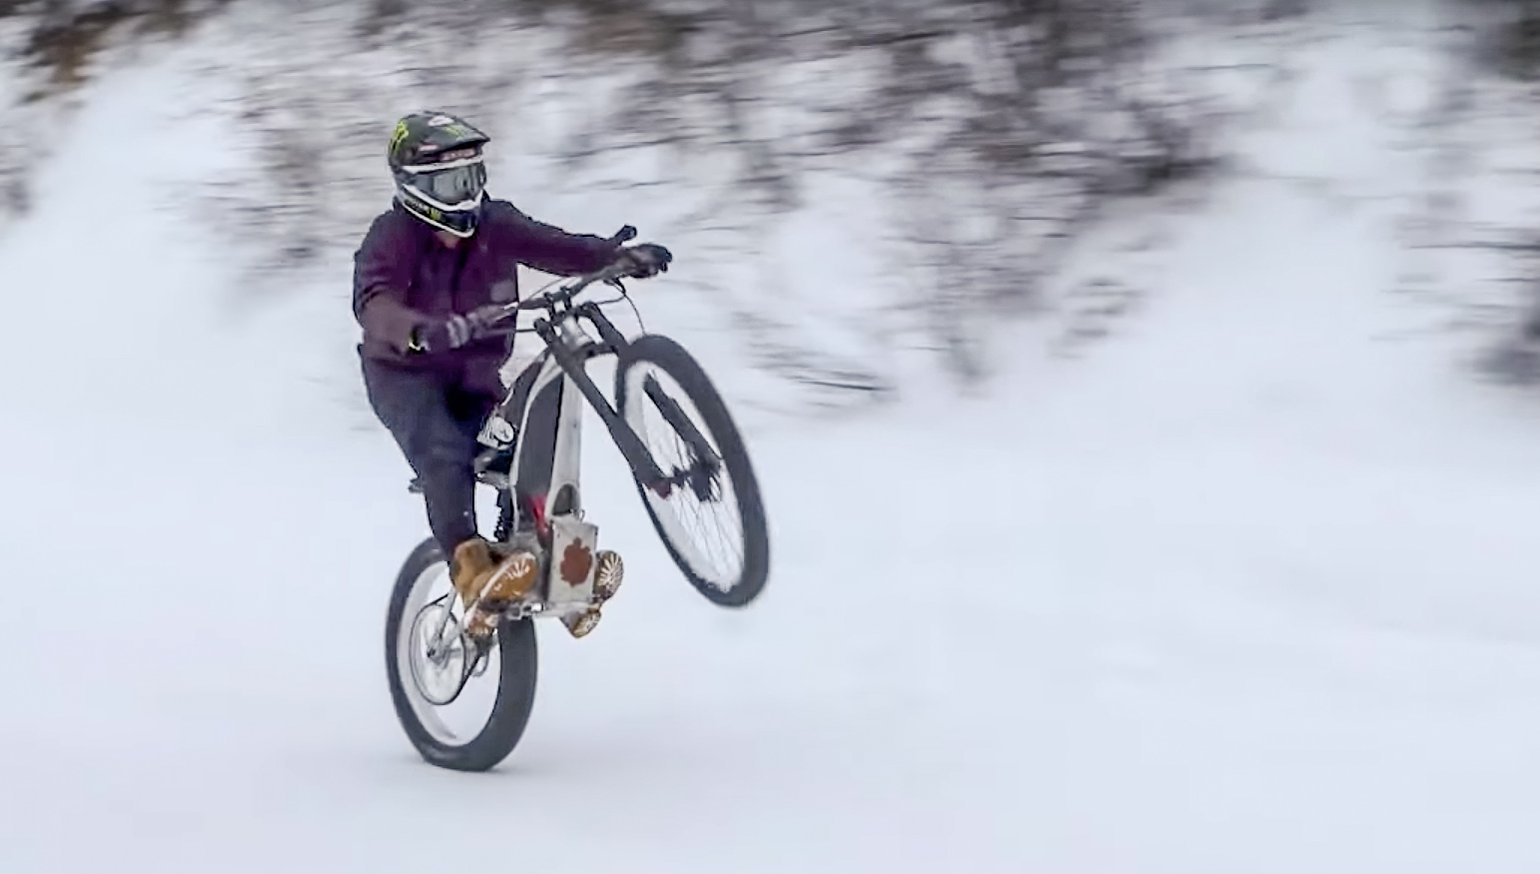 Video: First look at Harley's small electric bikes in action